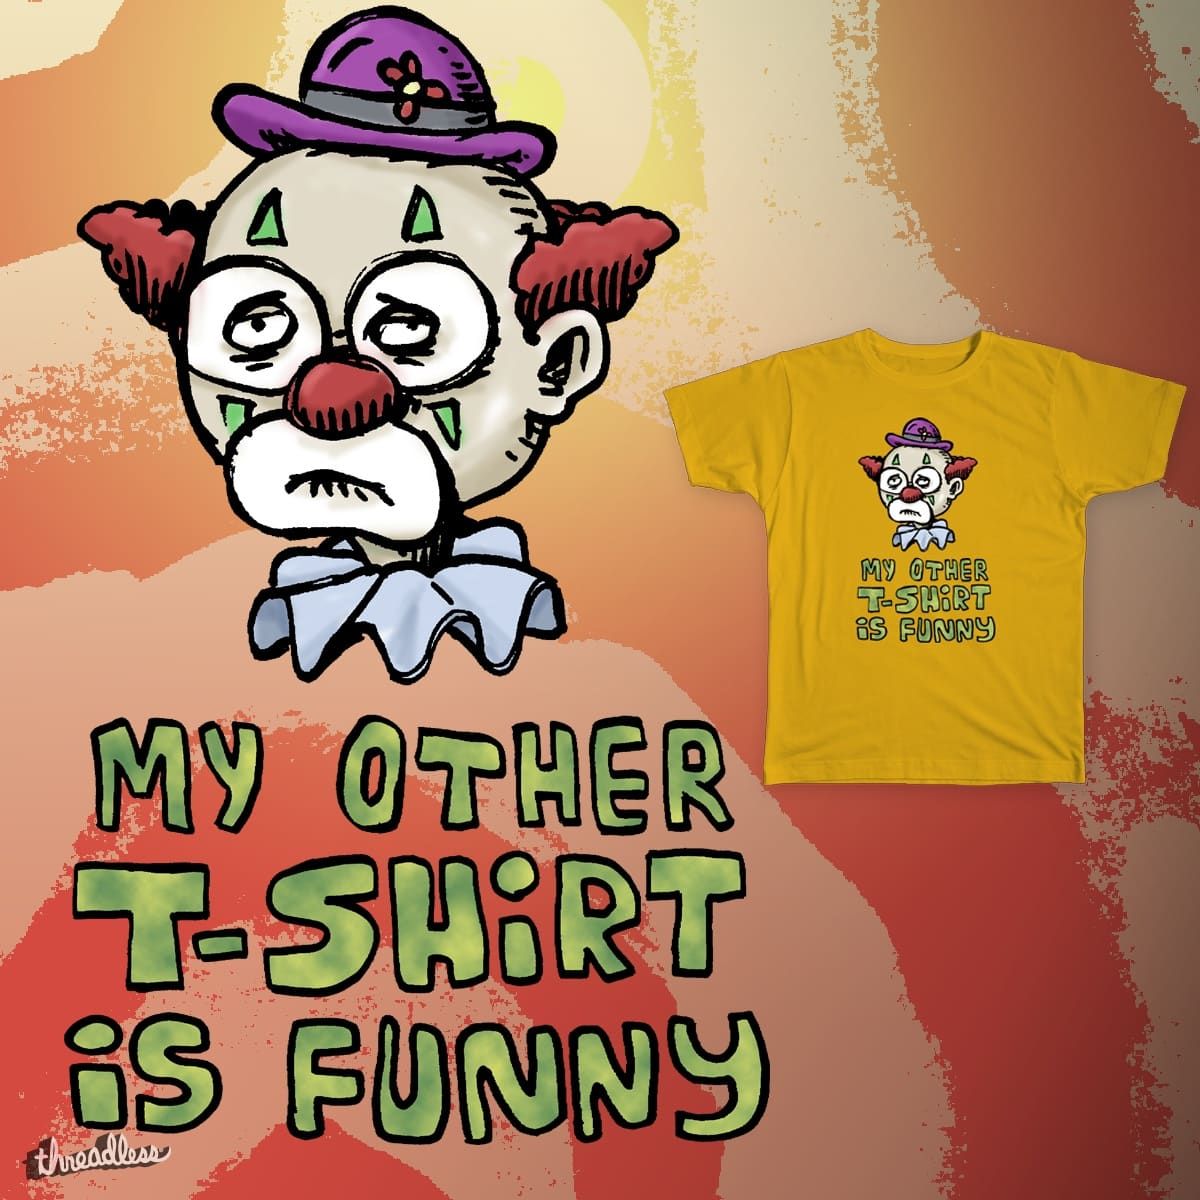 My Other T-Shirt Is Funny by VTavast on Threadless